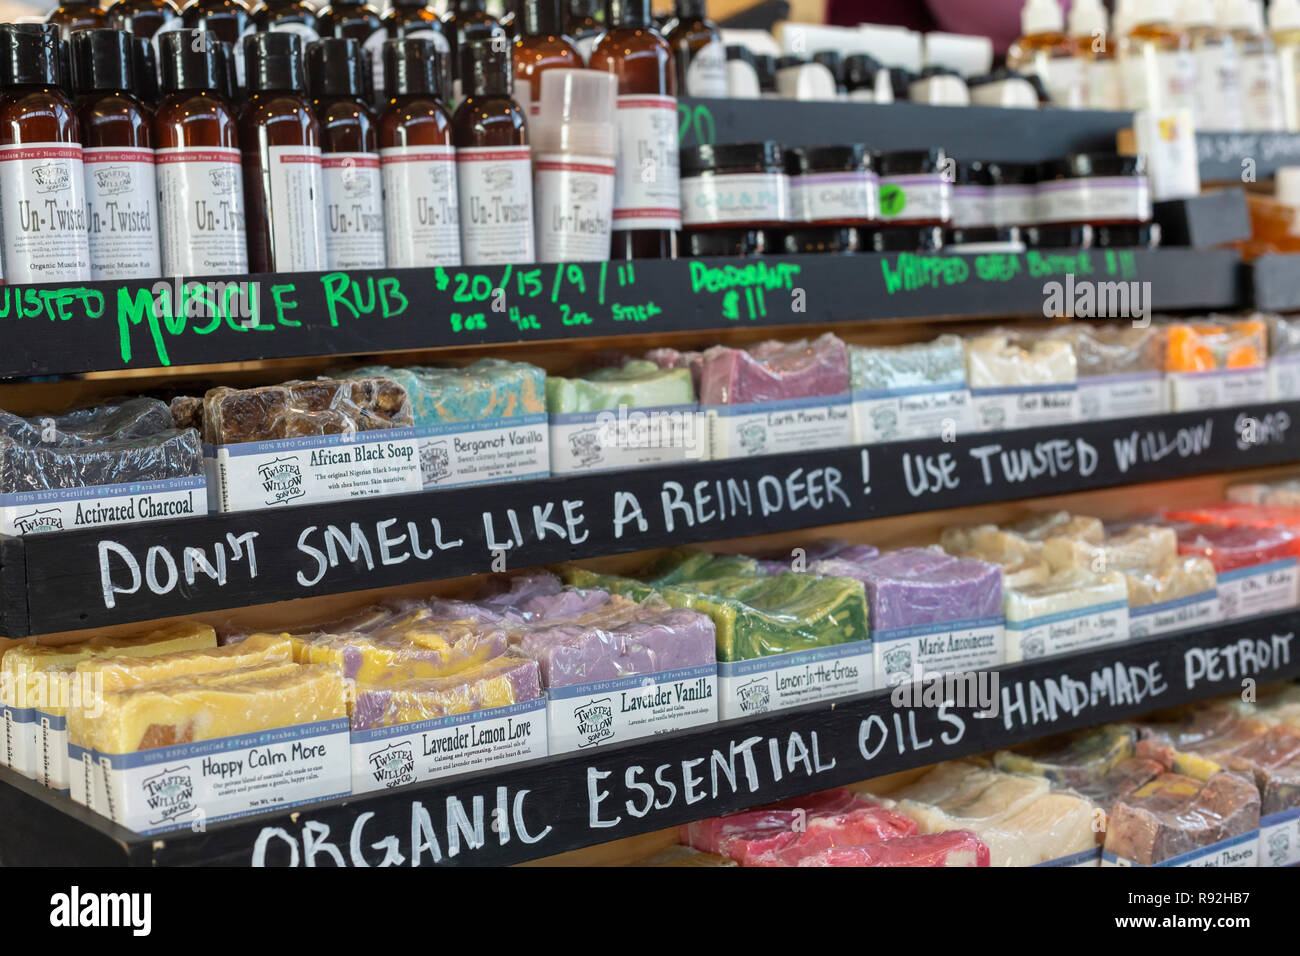 Detroit, Michigan USA - 18 December 2018 - Holiday gifts on sale at Detroit's Eastern Market. A maker of specialty soaps advertises, 'Don't smell like a reindeer!' Credit: Jim West/Alamy Live News - Stock Image